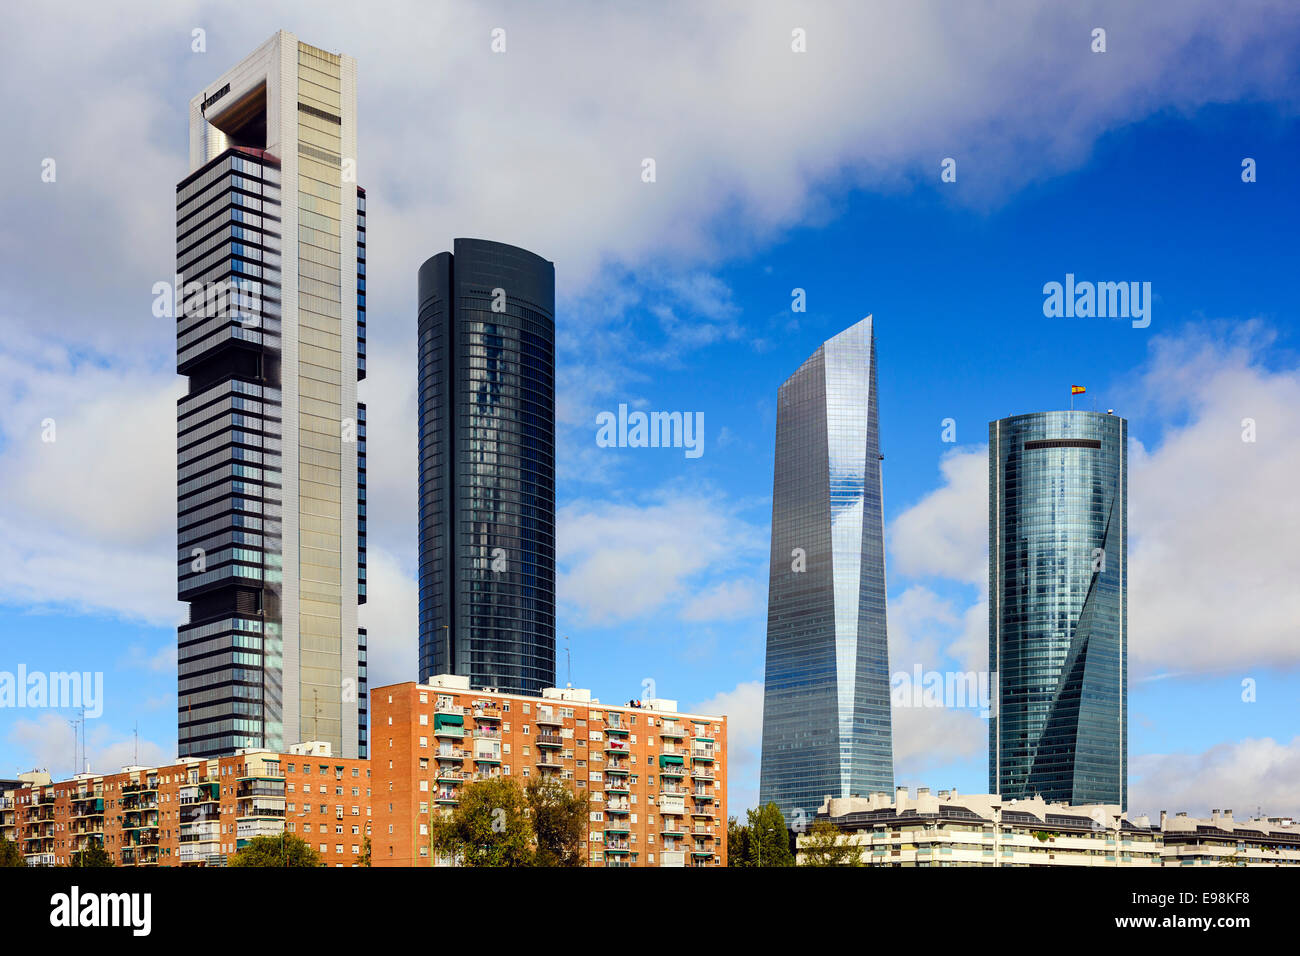 Madrid, Spain Financial District skyline. - Stock Image